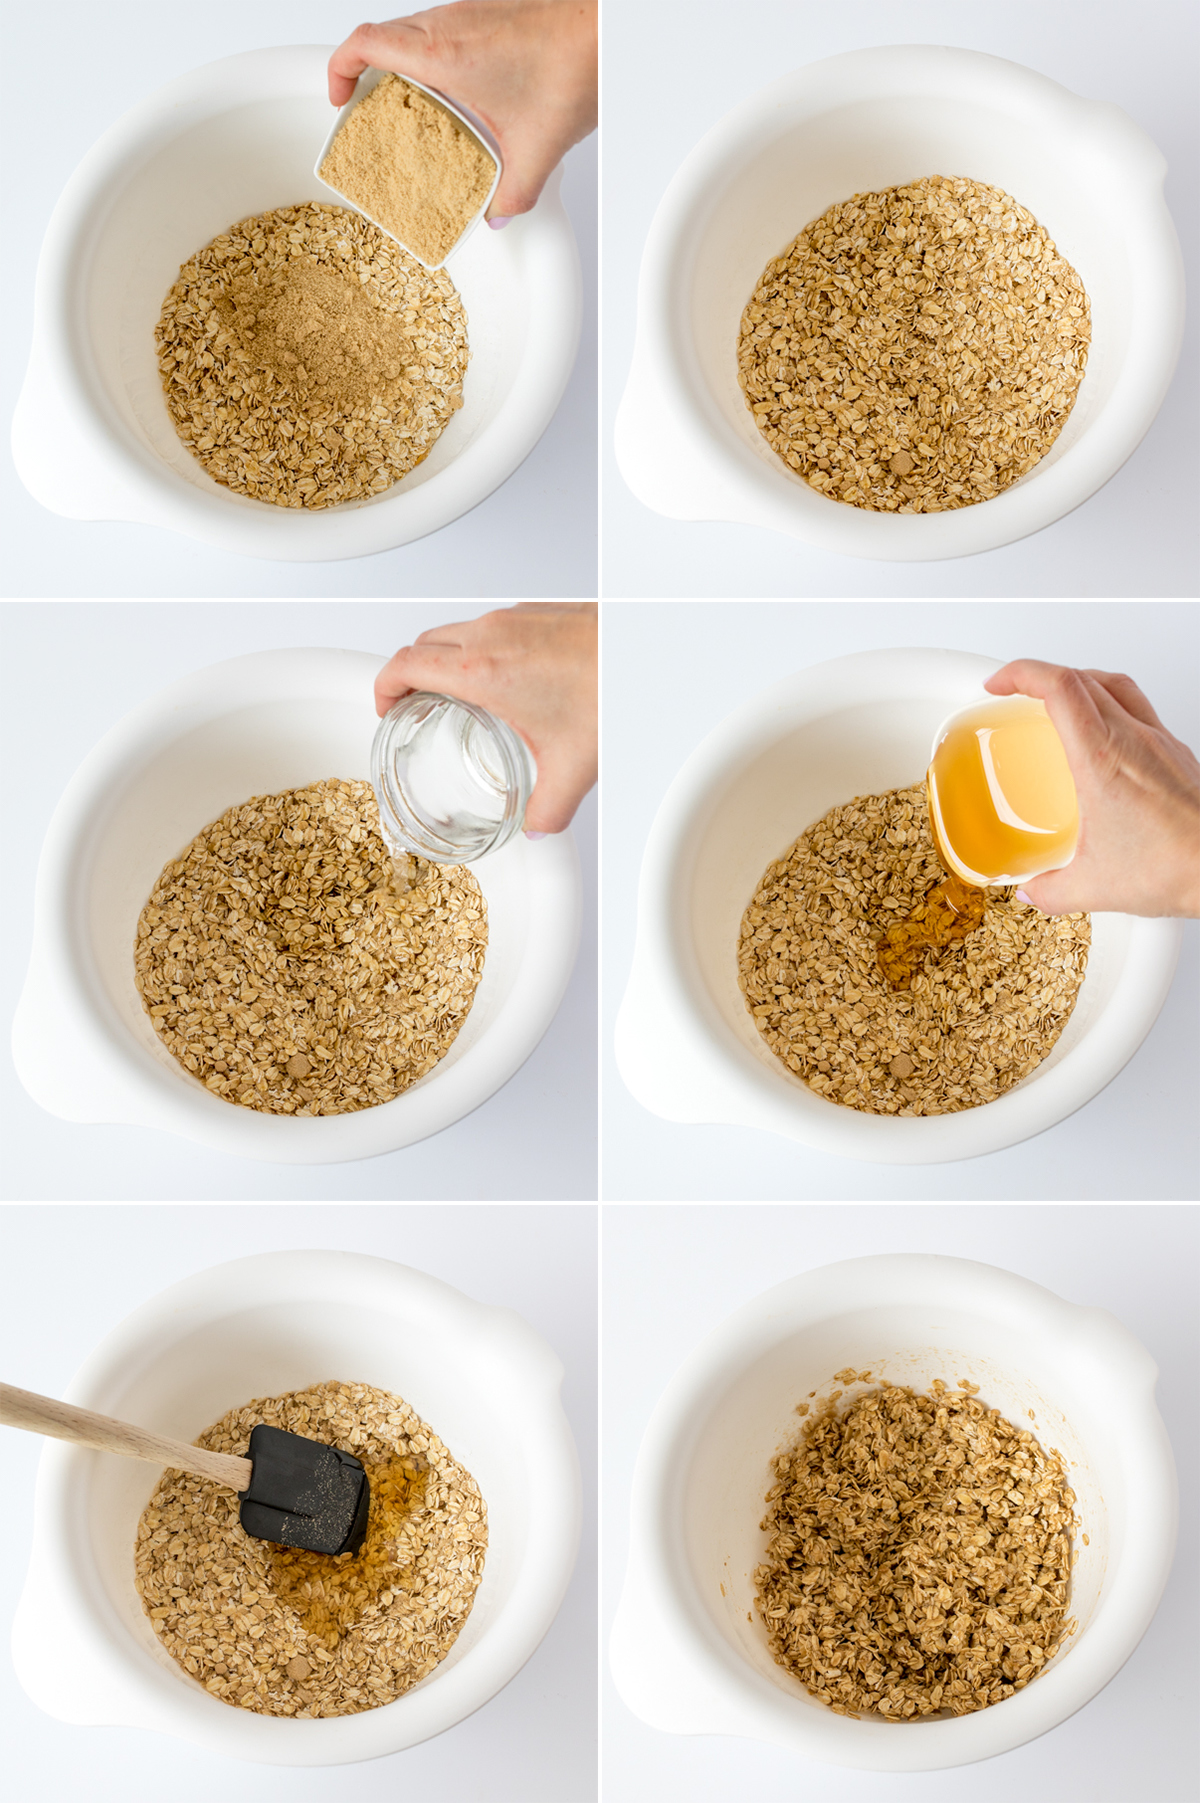 Berry nut granola step1 collage